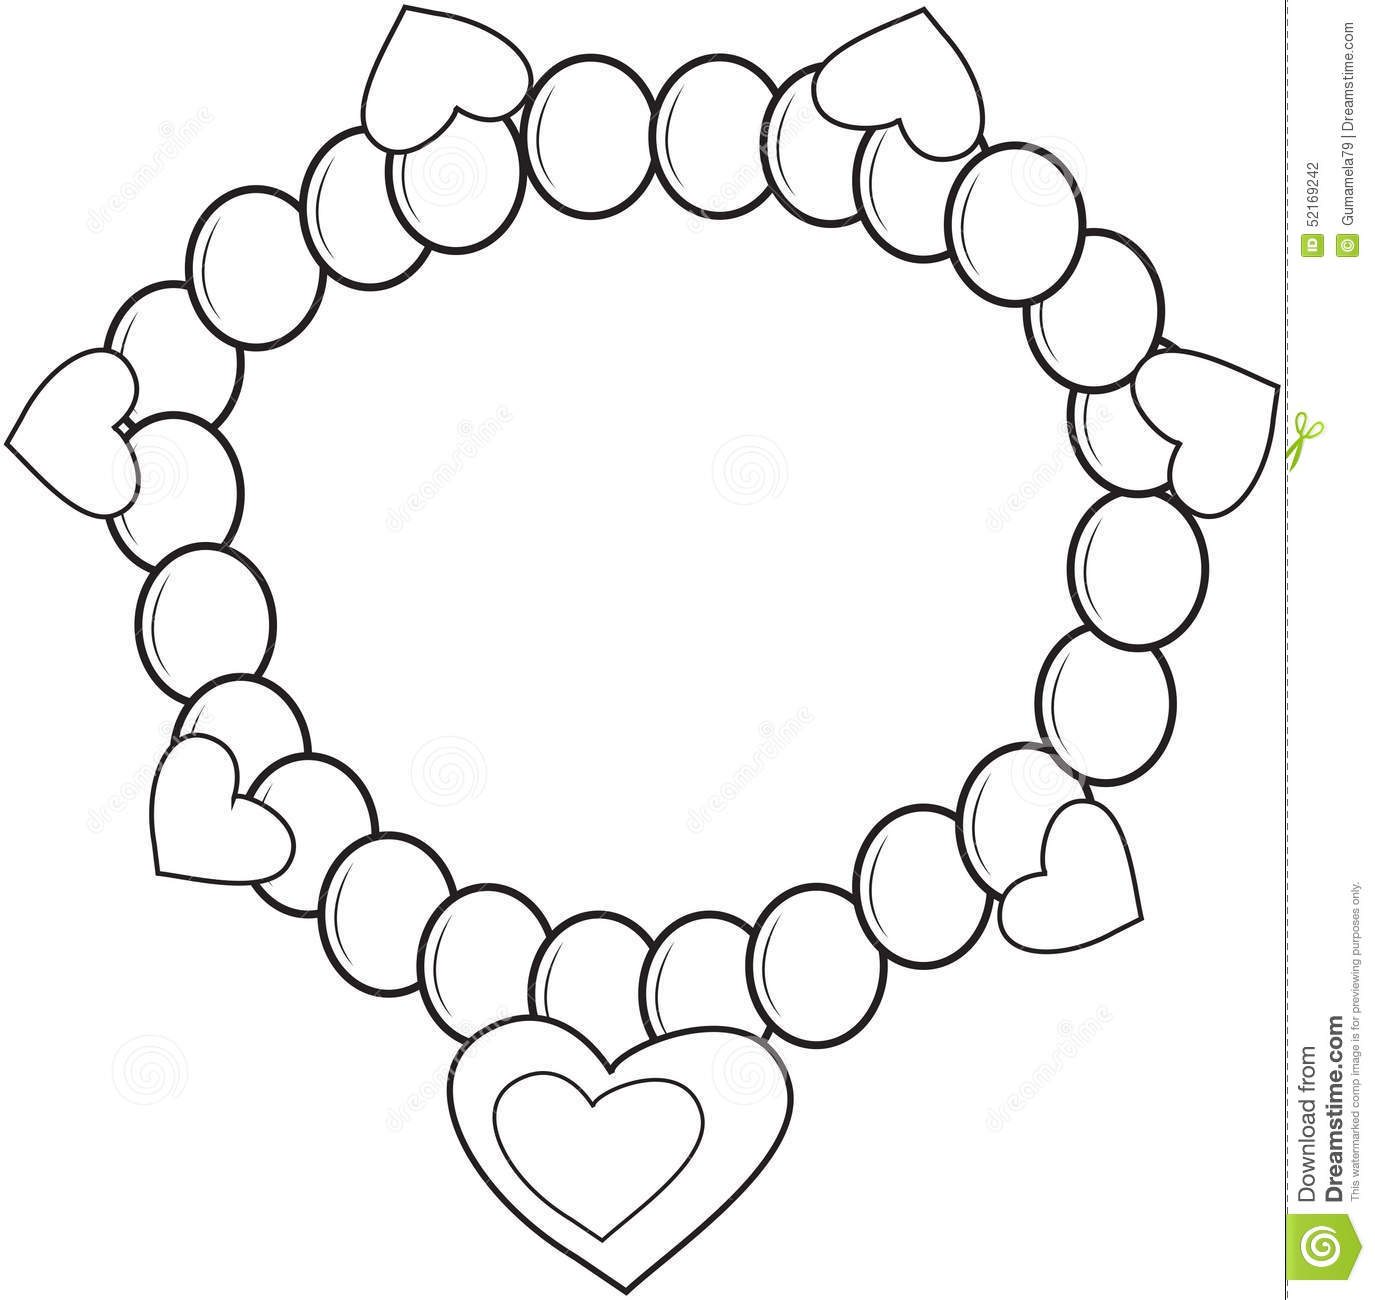 bracelet coloring page stock illustration image 52169242